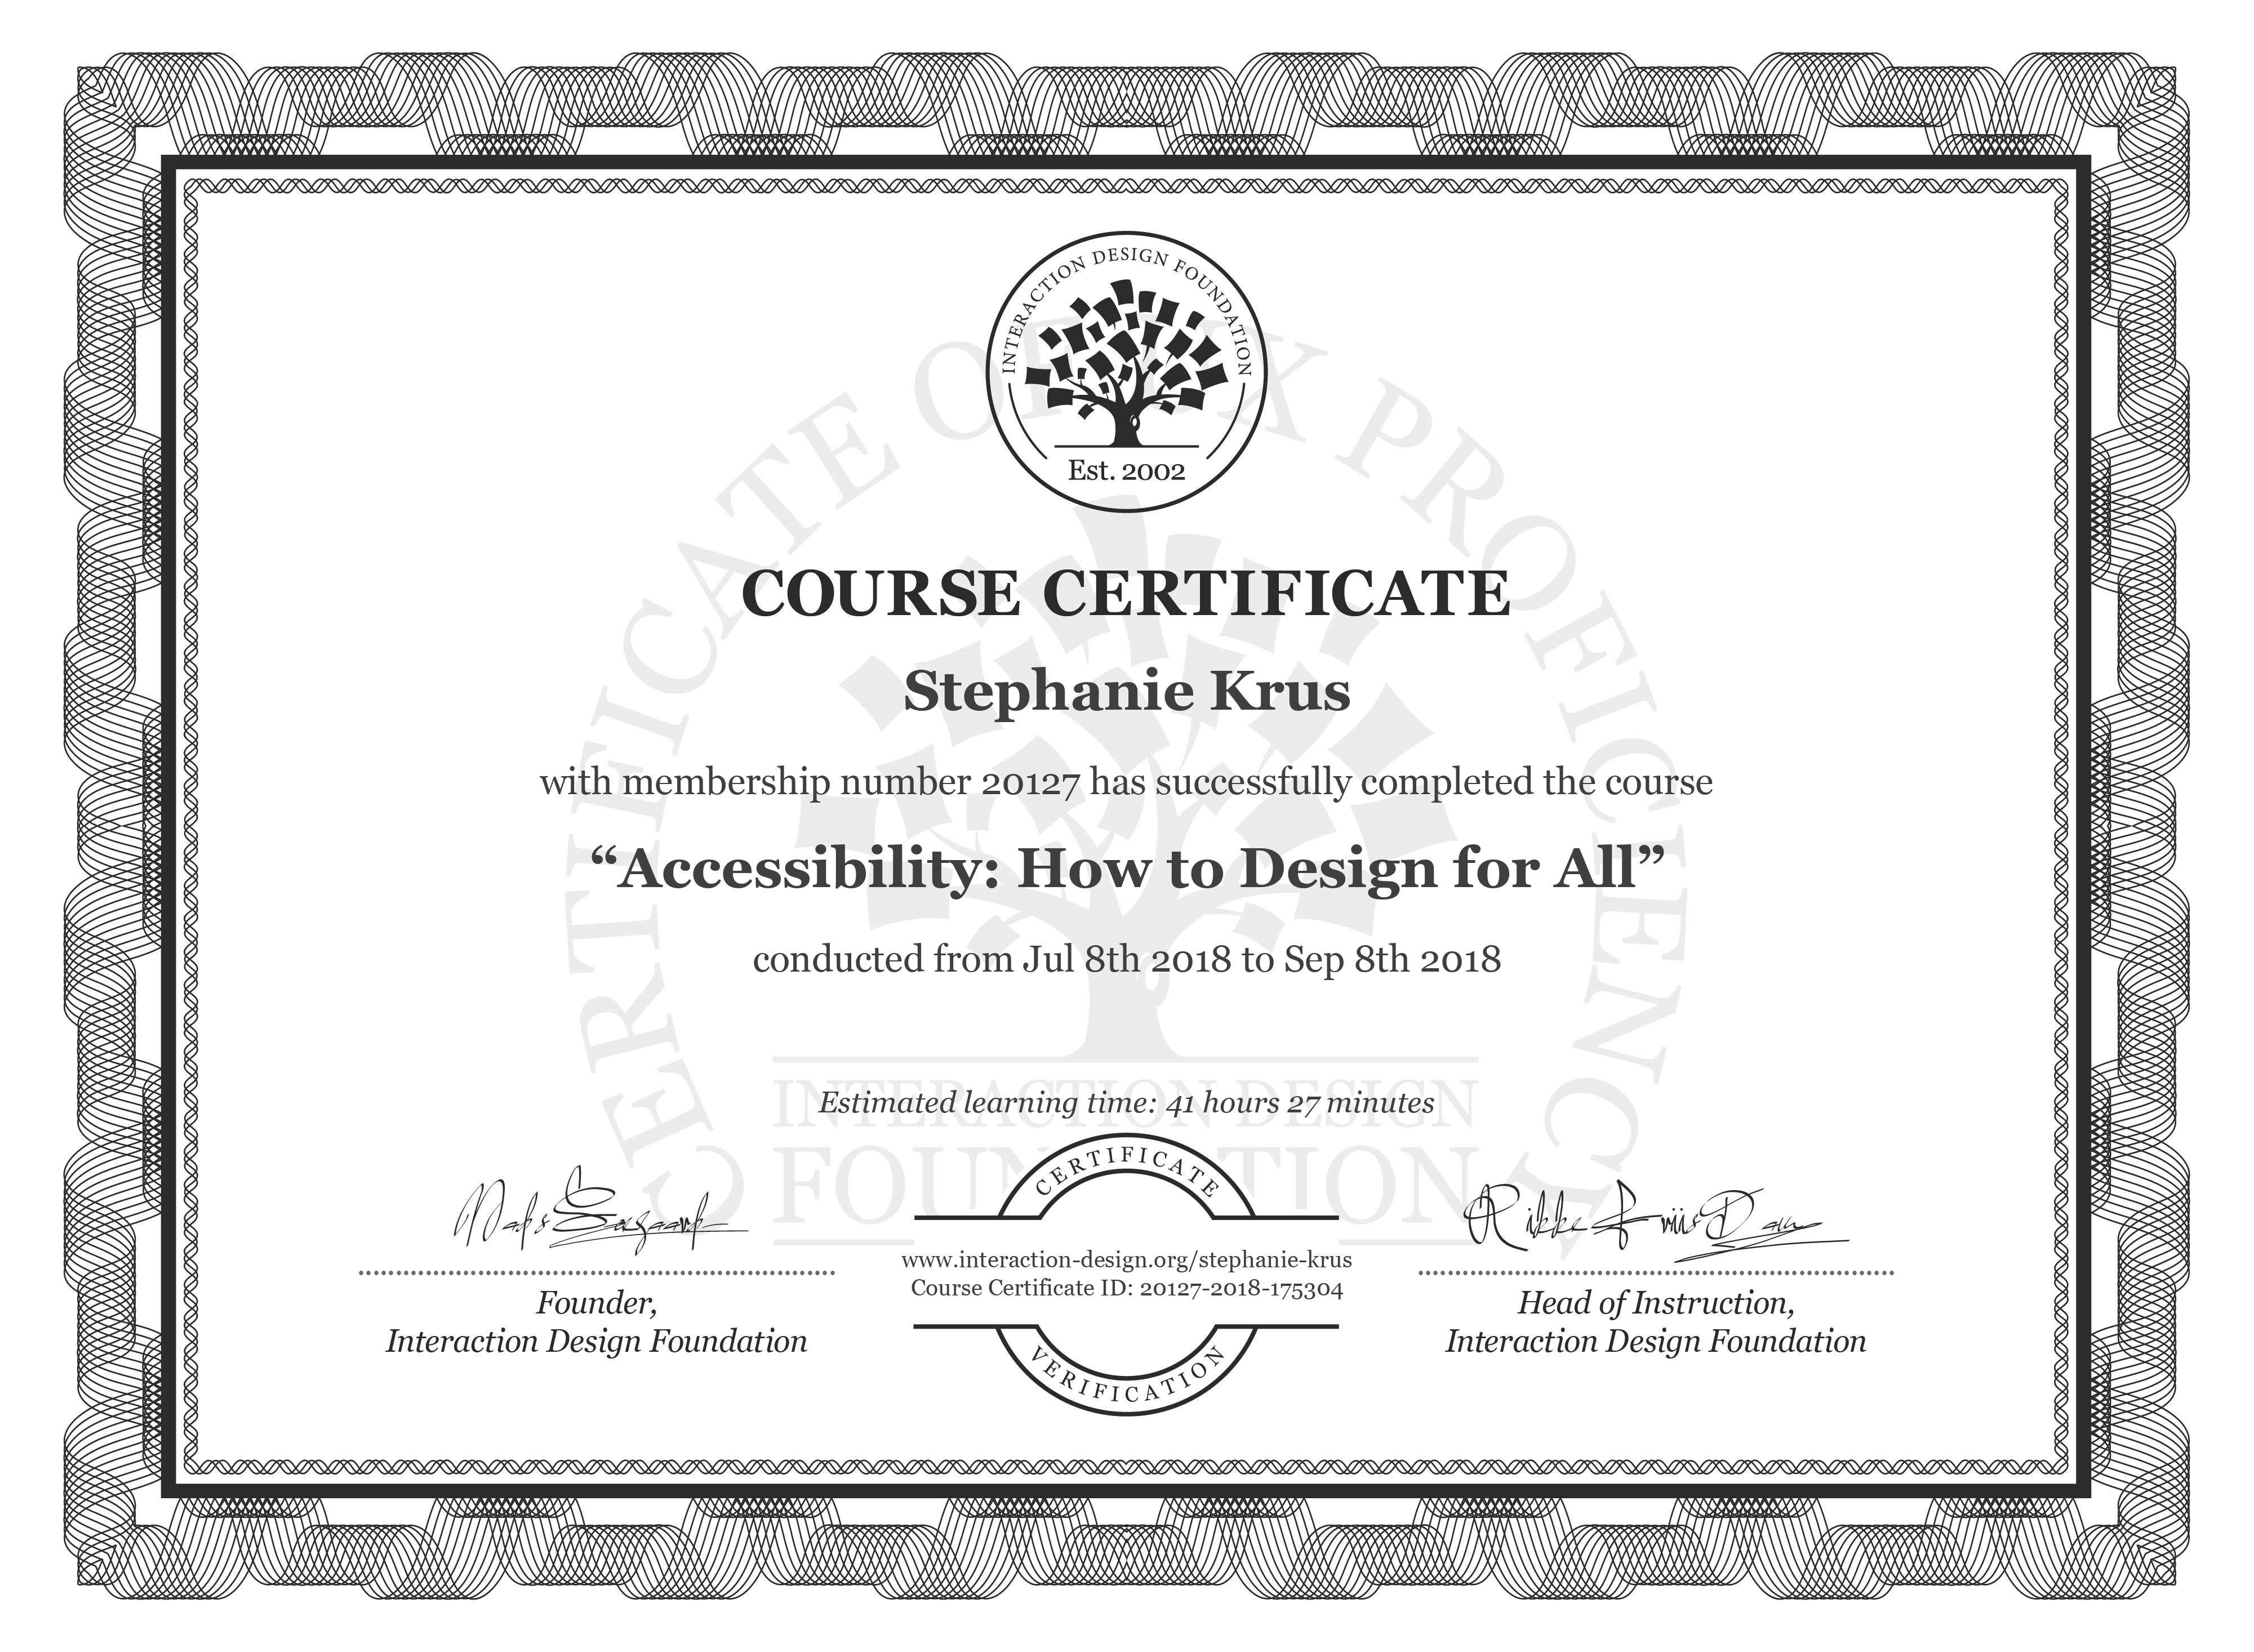 Stephanie Krus: Course Certificate - Accessibility: How to Design for All